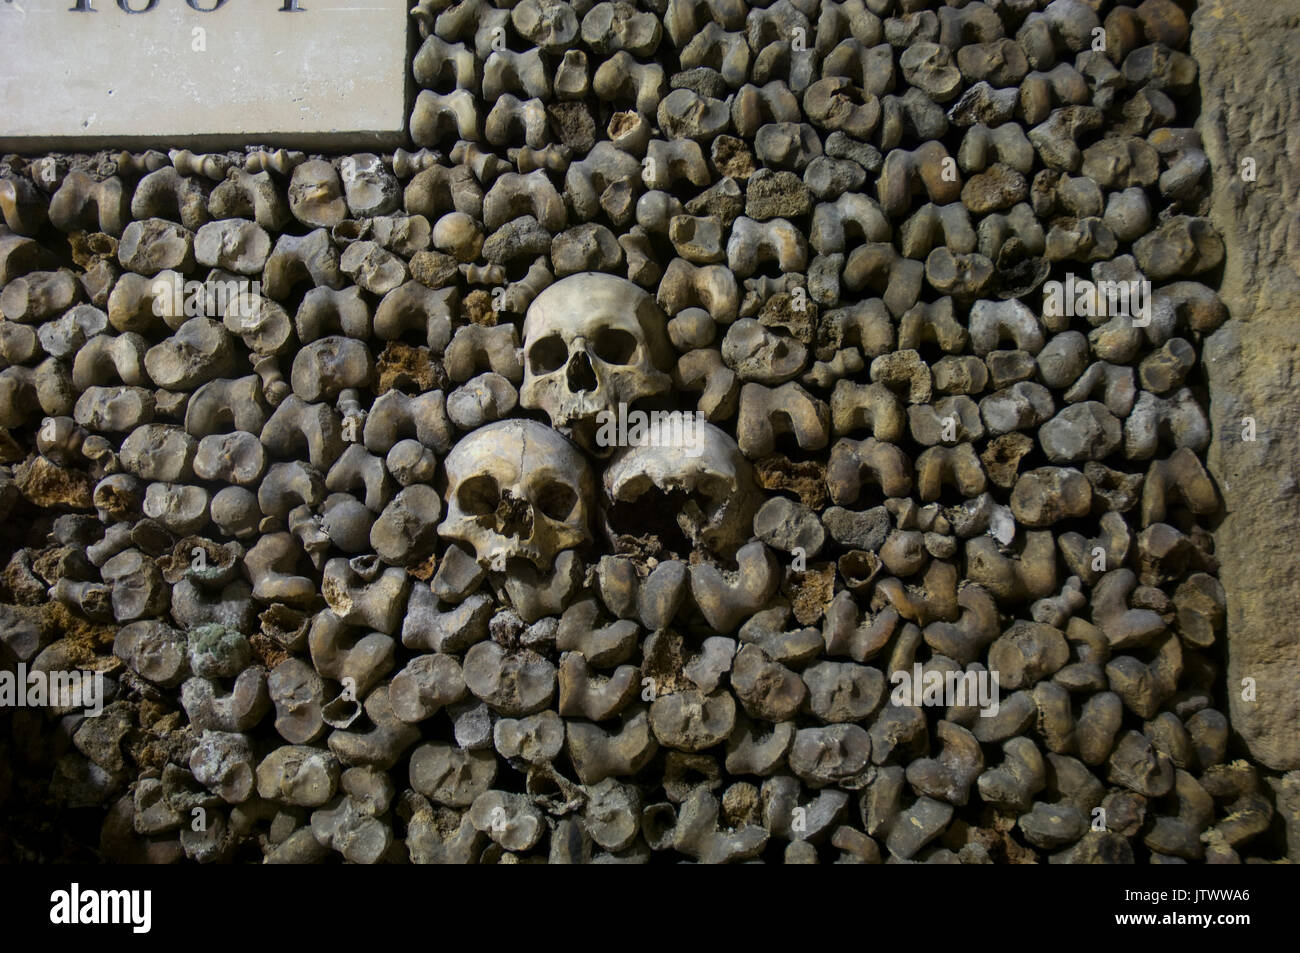 skulls and bones decorating the walls of the Catacombs in Paris, France - Stock Image